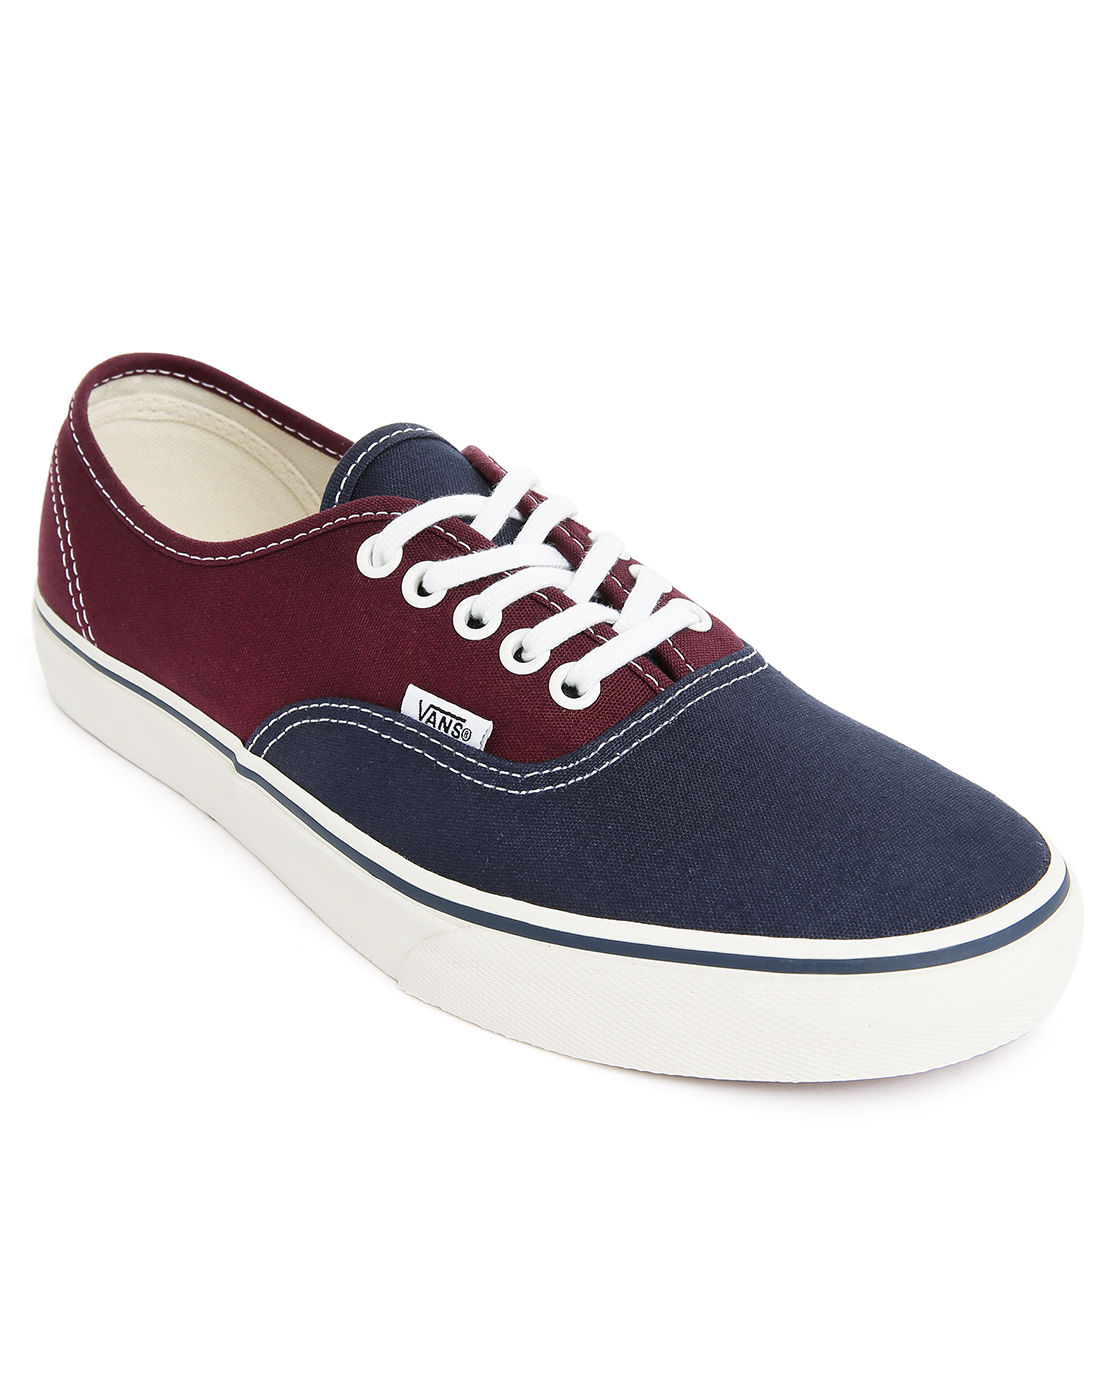 vans navy blue and burgundy twotone authentic sneakers in